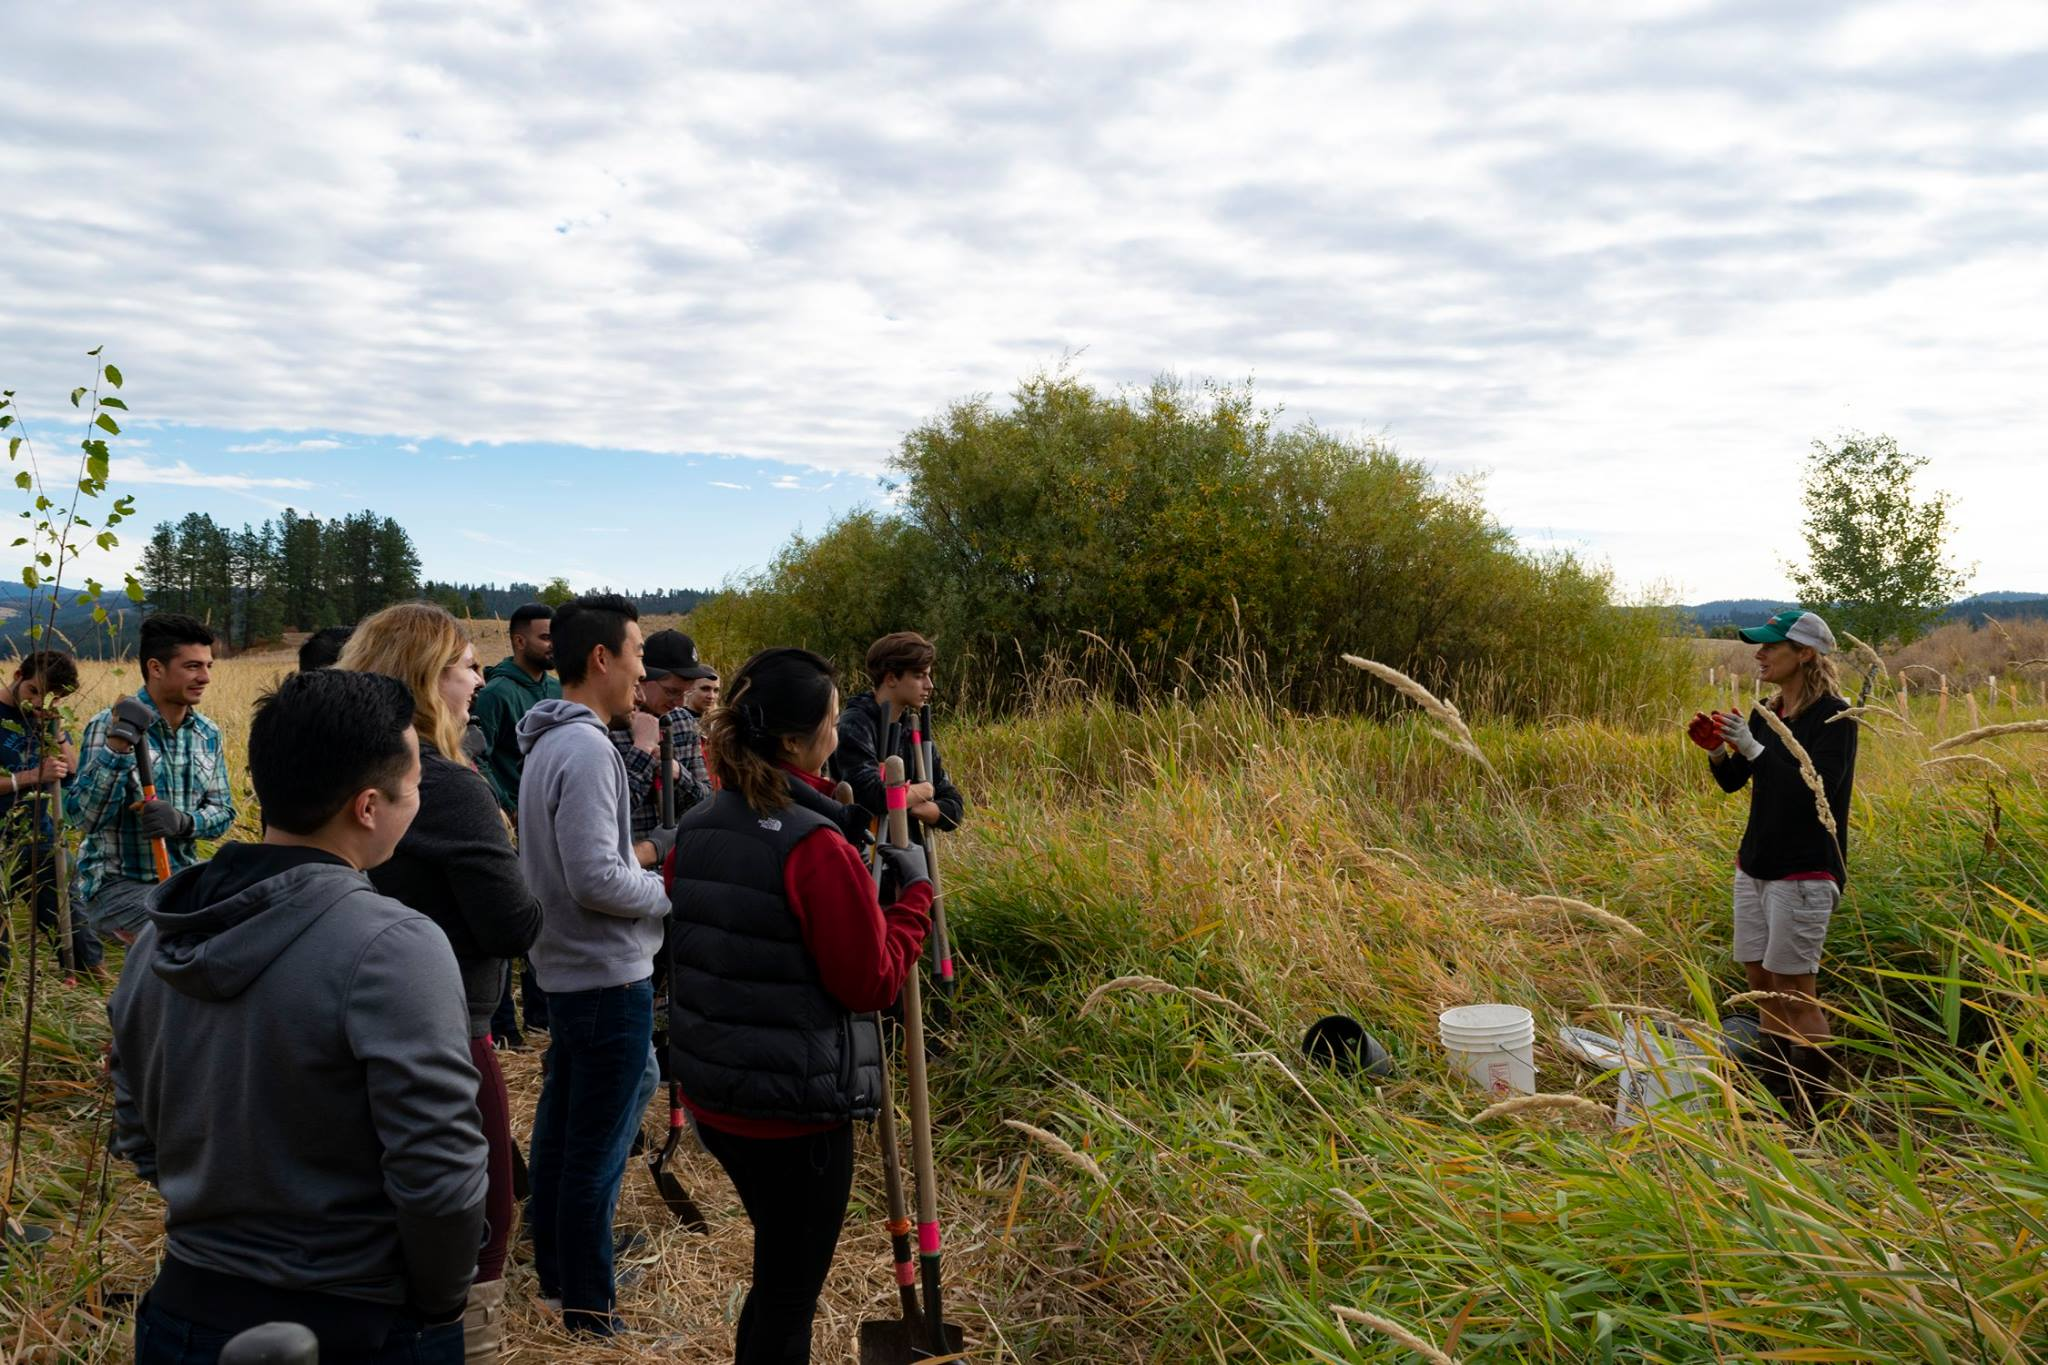 We work in local schools to get students outdoors and we educate them on the natural world, water quality, and resource issues. We also teach environmental literacy and job preparedness at the Geiger Correctional Facility.